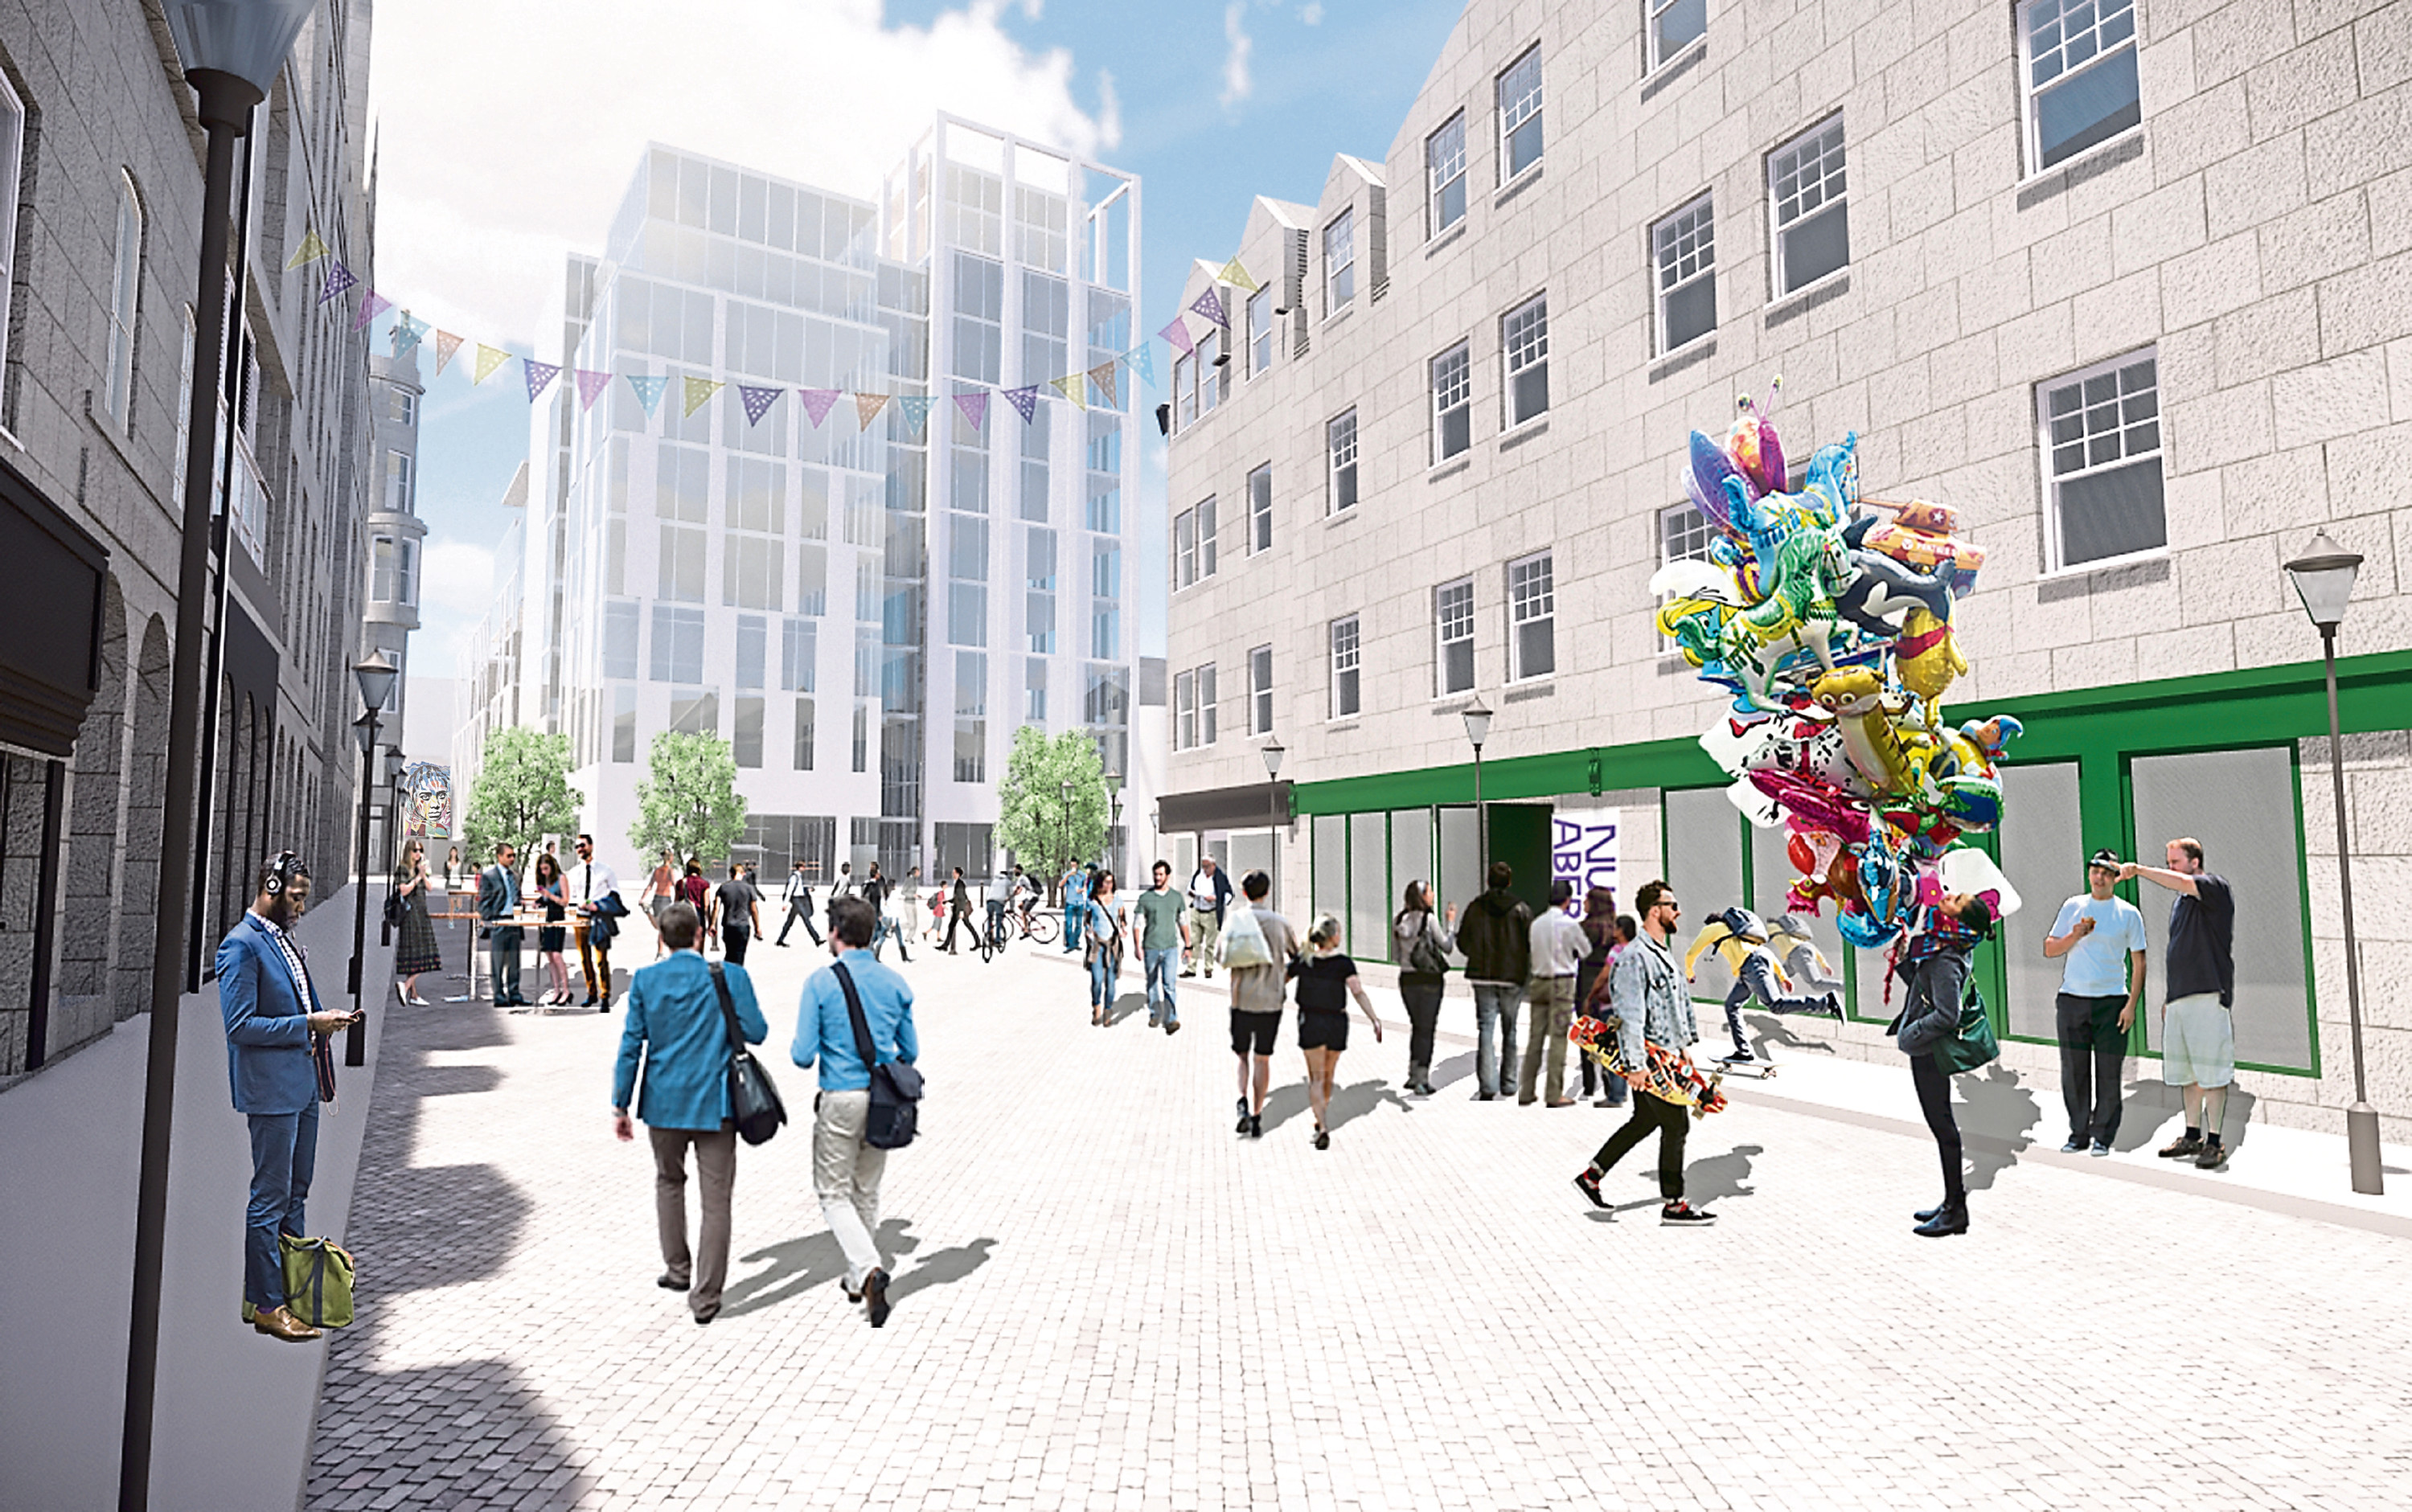 An artist's impression of the planned tower which would replace Aberdeen Indoor Market